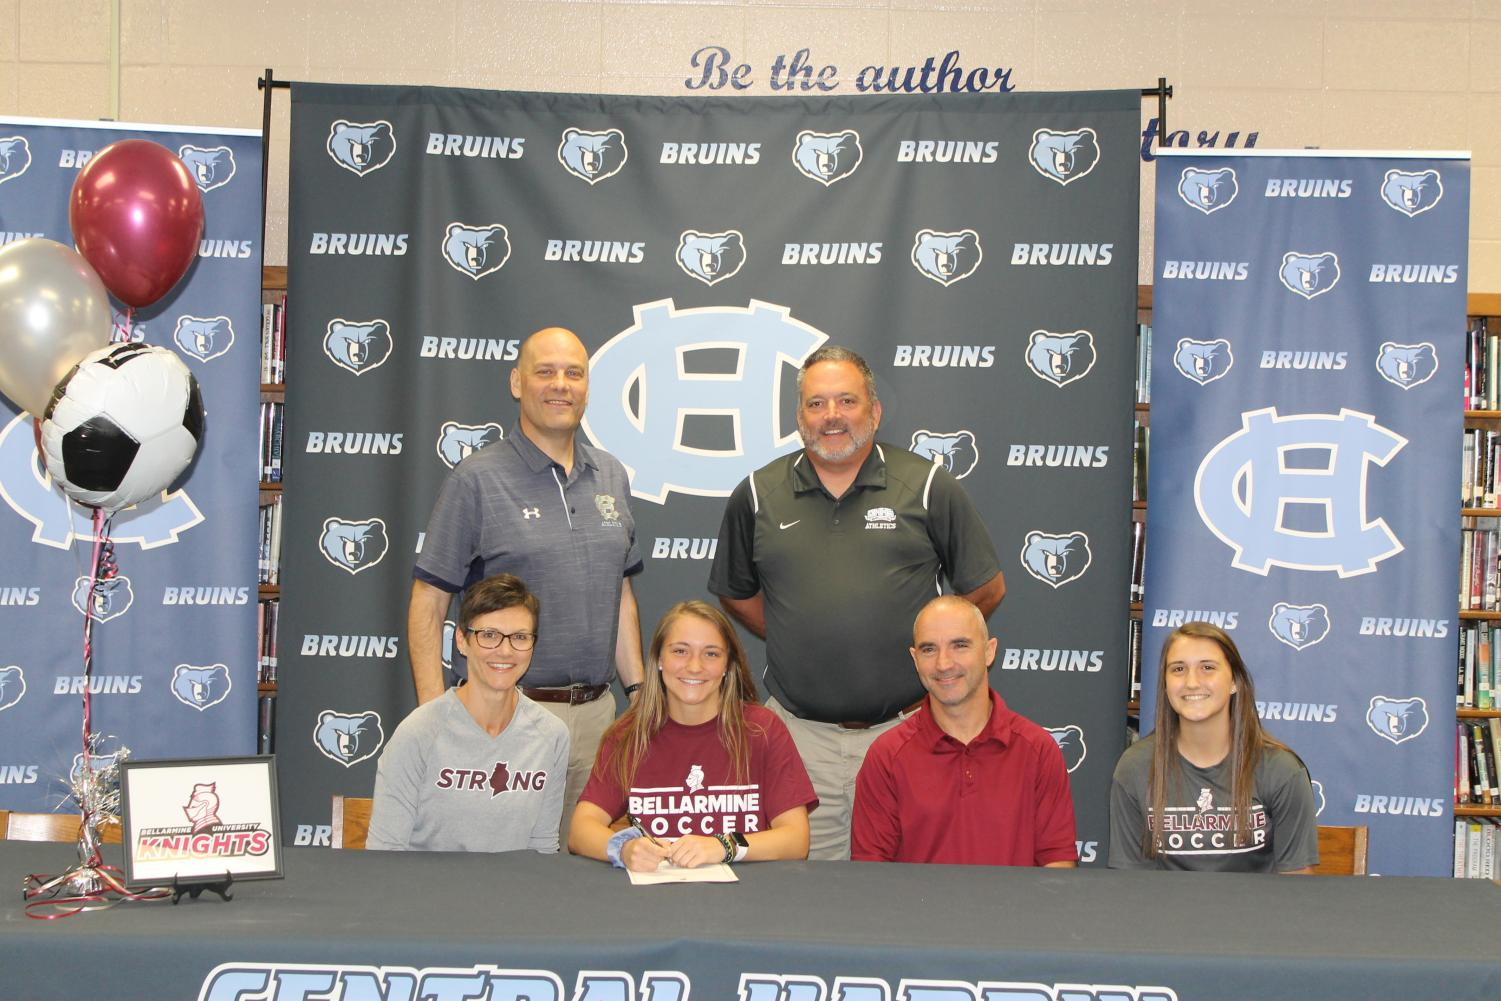 Brentyn+Dodd+signs+with+Bellarmine+University+Soccer+on+April+11%2C+supported+by+principal+Tim+Isaacs%2C+athletic+director+J.C.+Wright%2C+and+her+parents+and+sister.